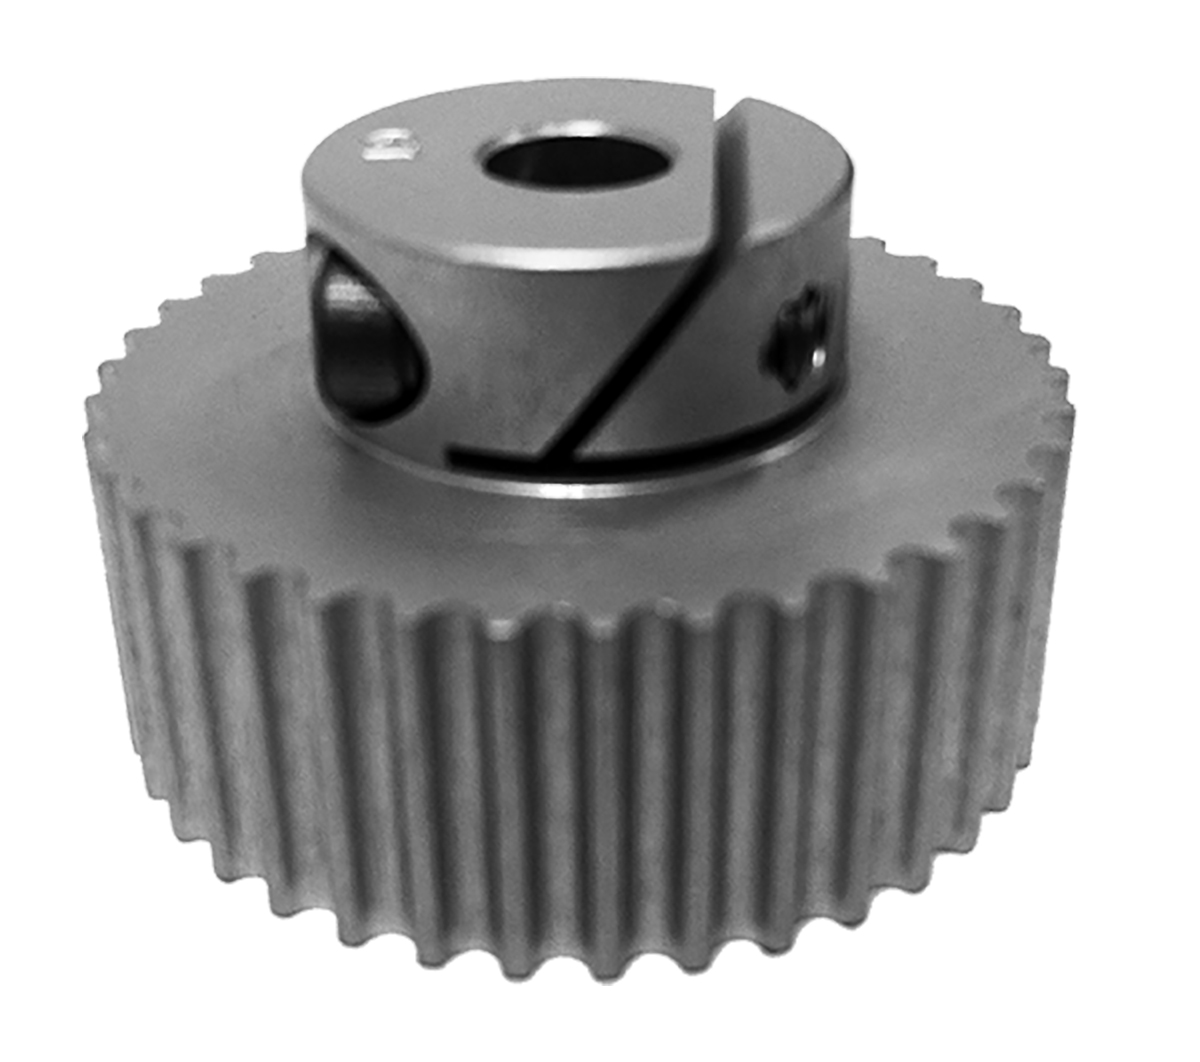 26-3P09MIA6 - E-Z Lock Hub Aluminum Powerhouse® Pulleys